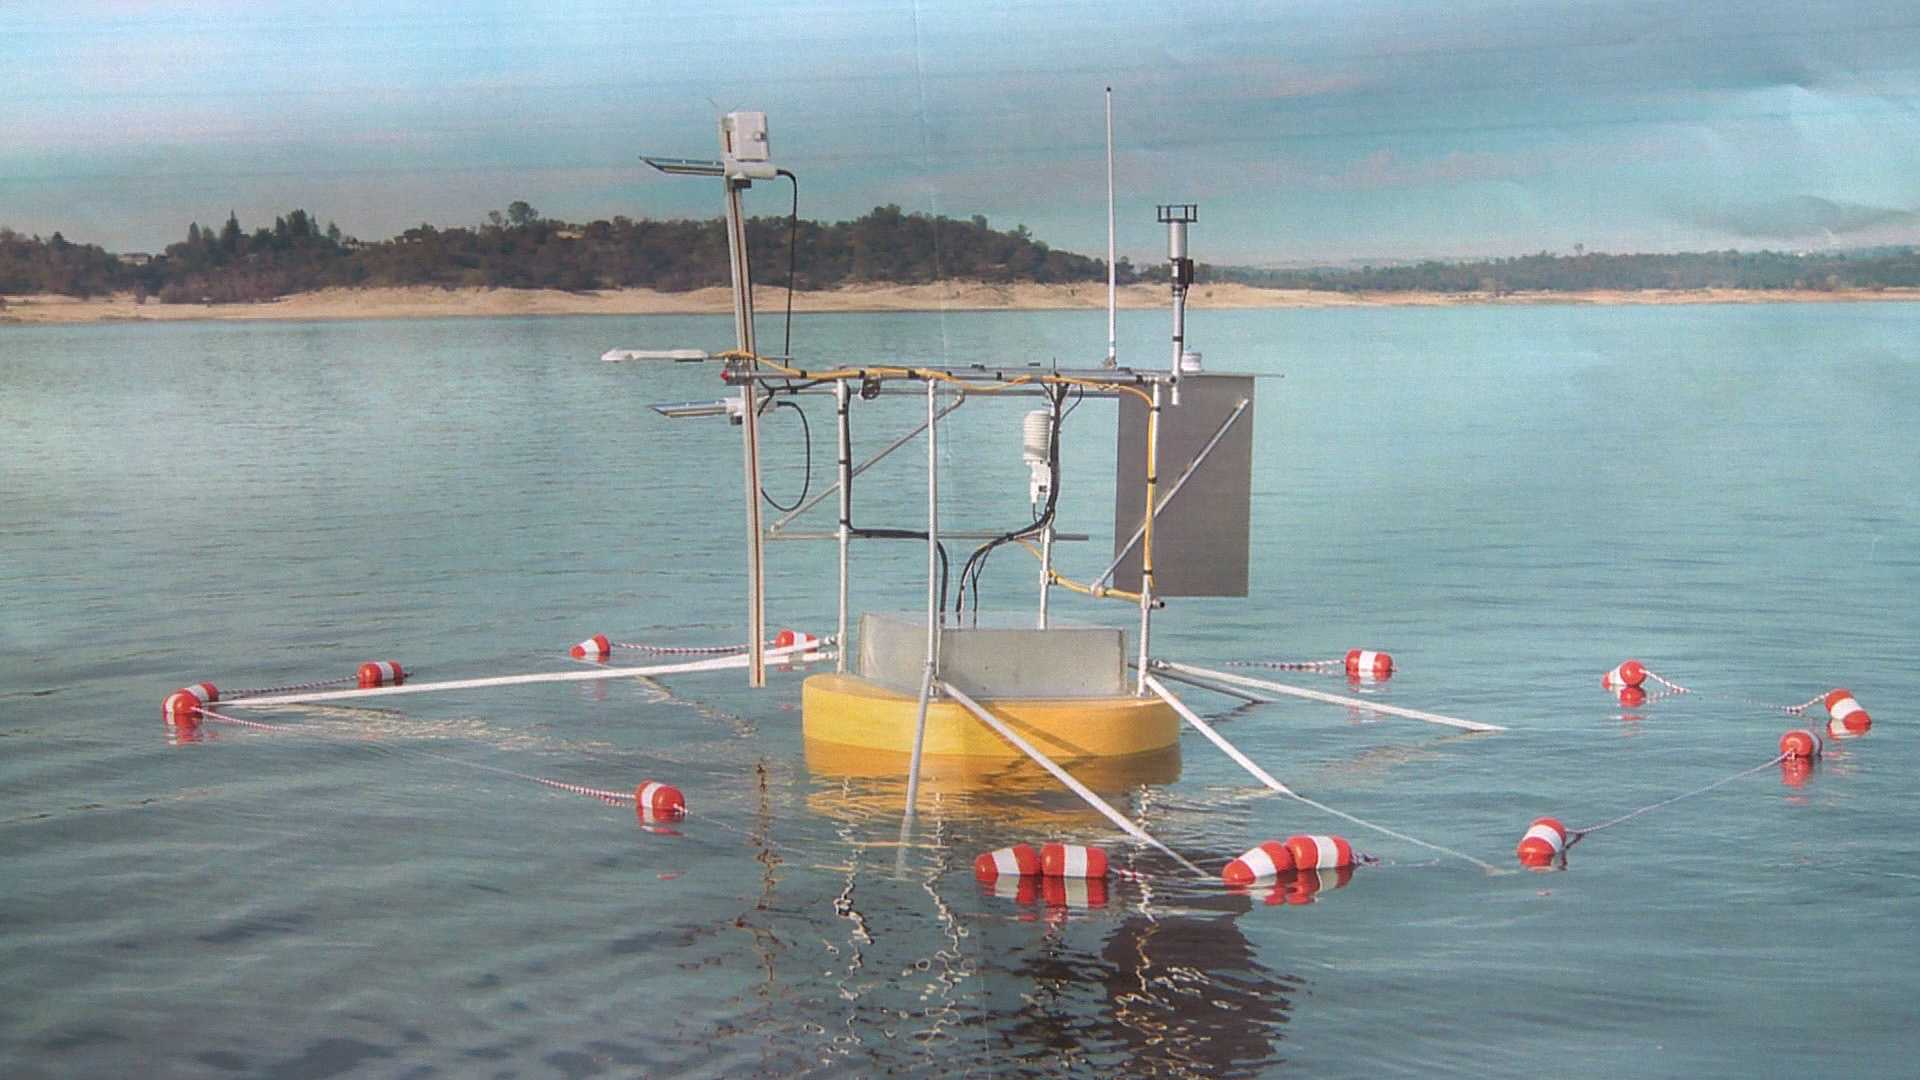 A buoy probe on Folsom Lake is measuring how much water is lost through evaporation.